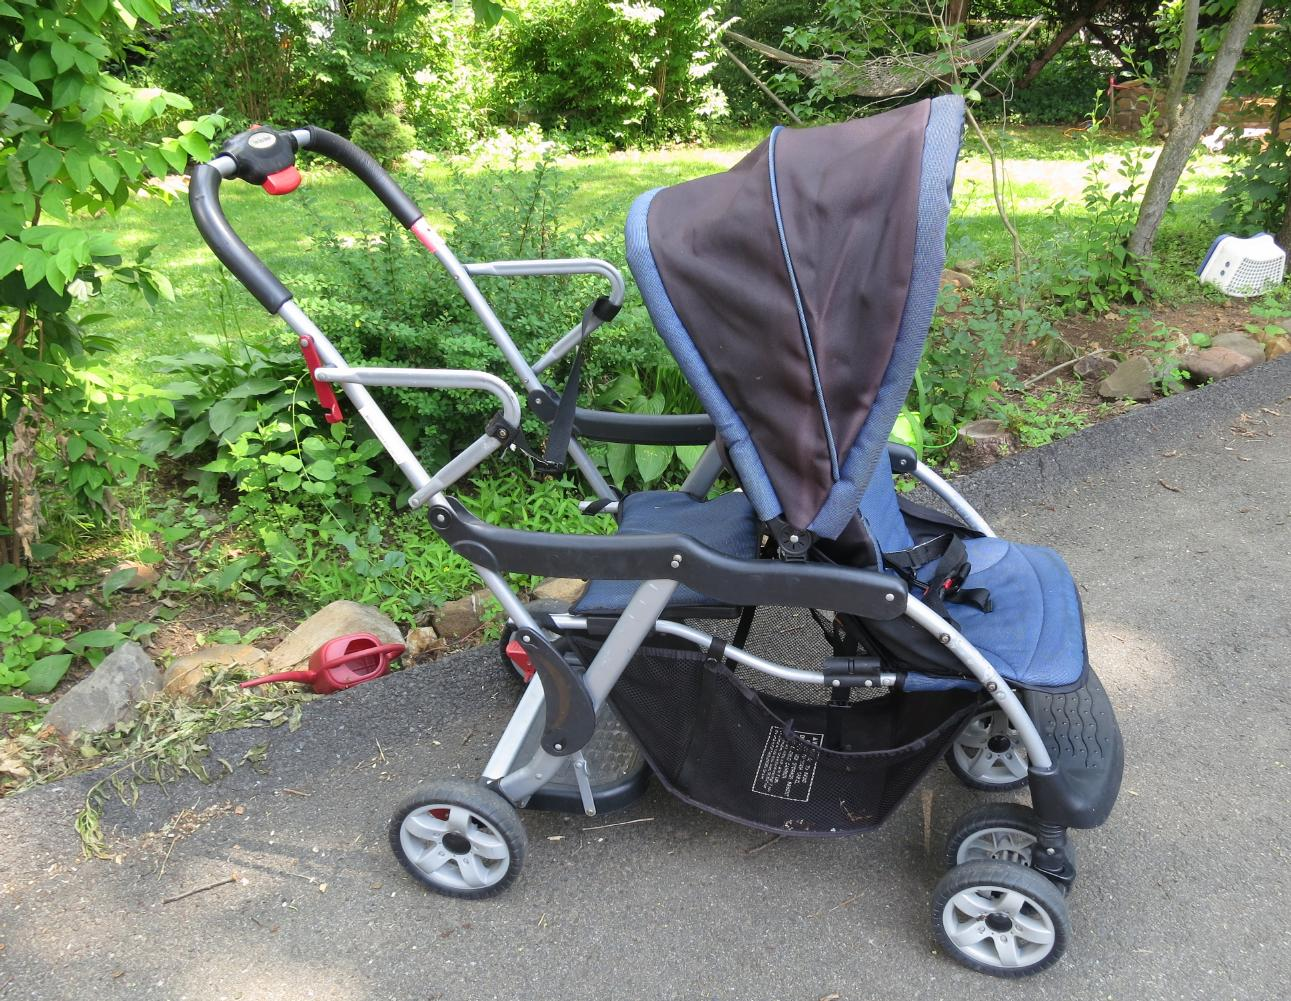 Offspring Carriage Devices & Stuff Page